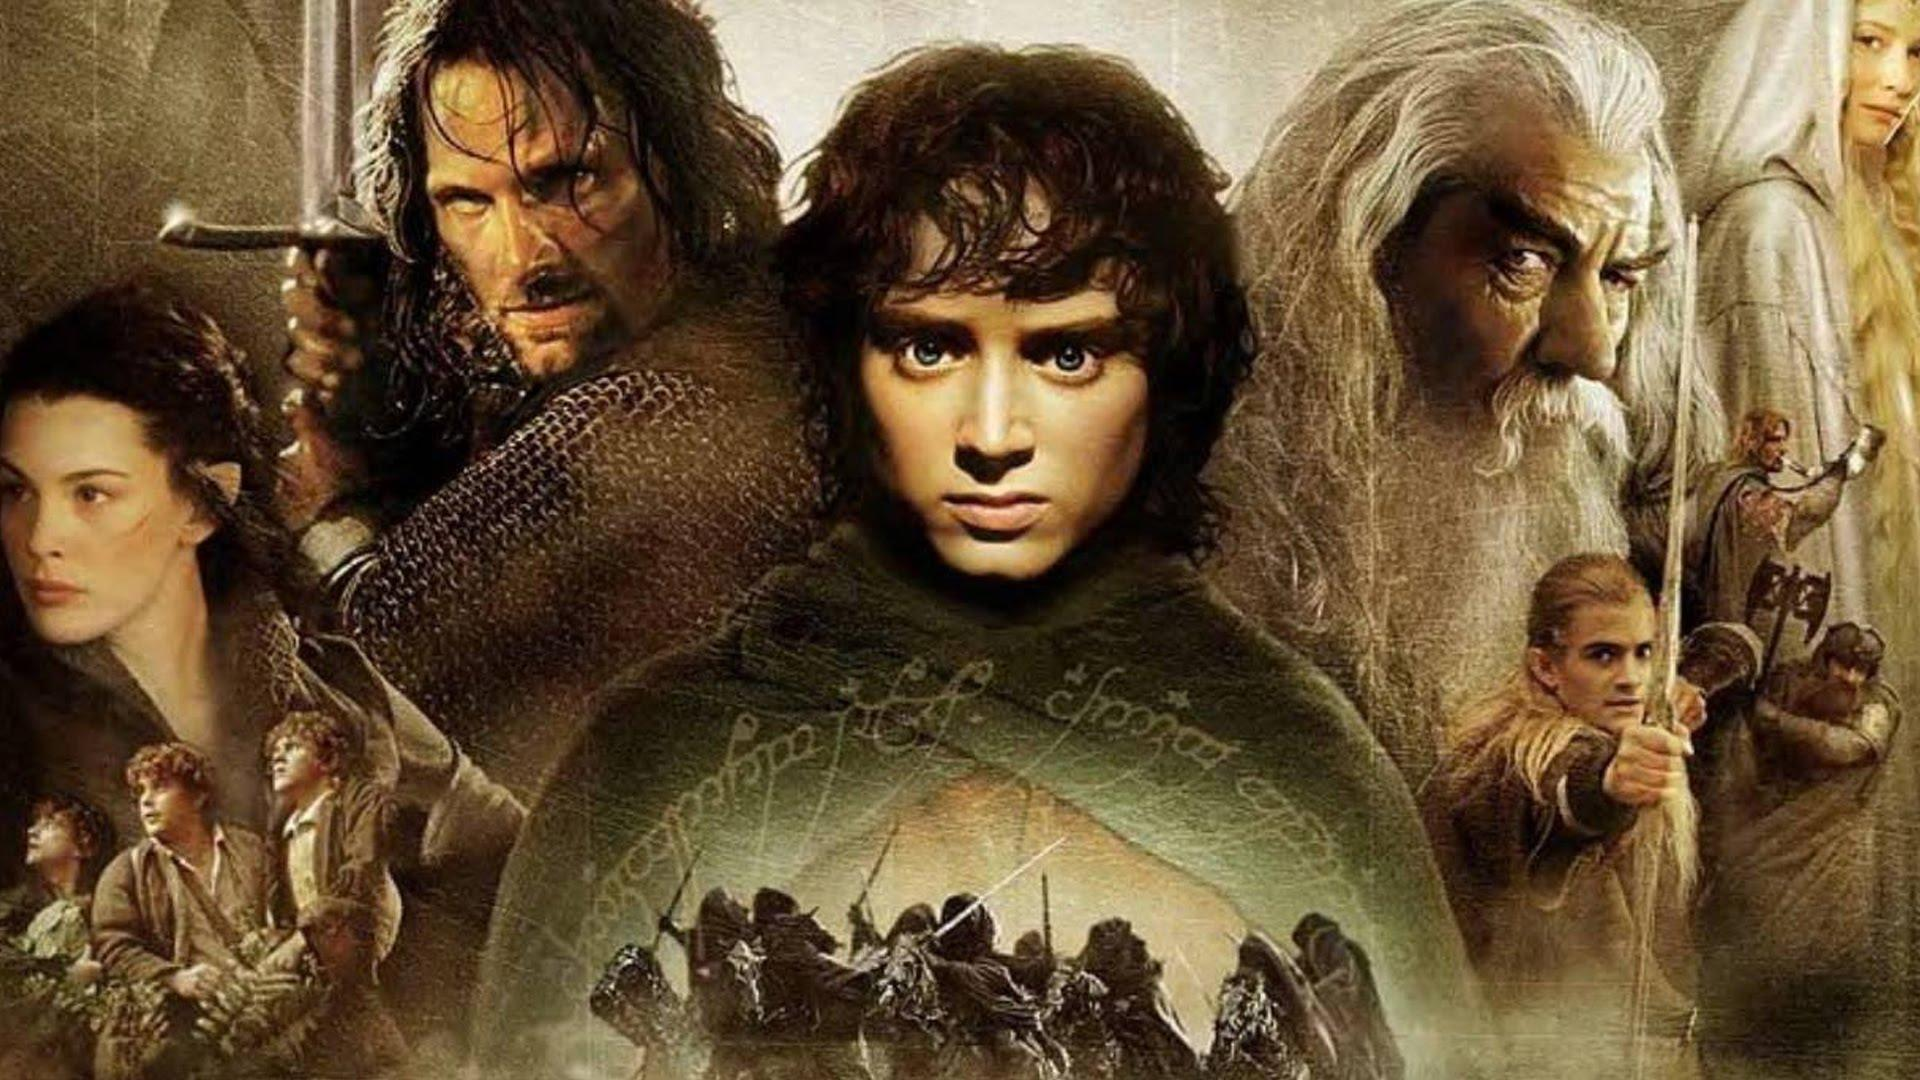 Amazon Game Studios is co-developing a Lord of the Rings MMO